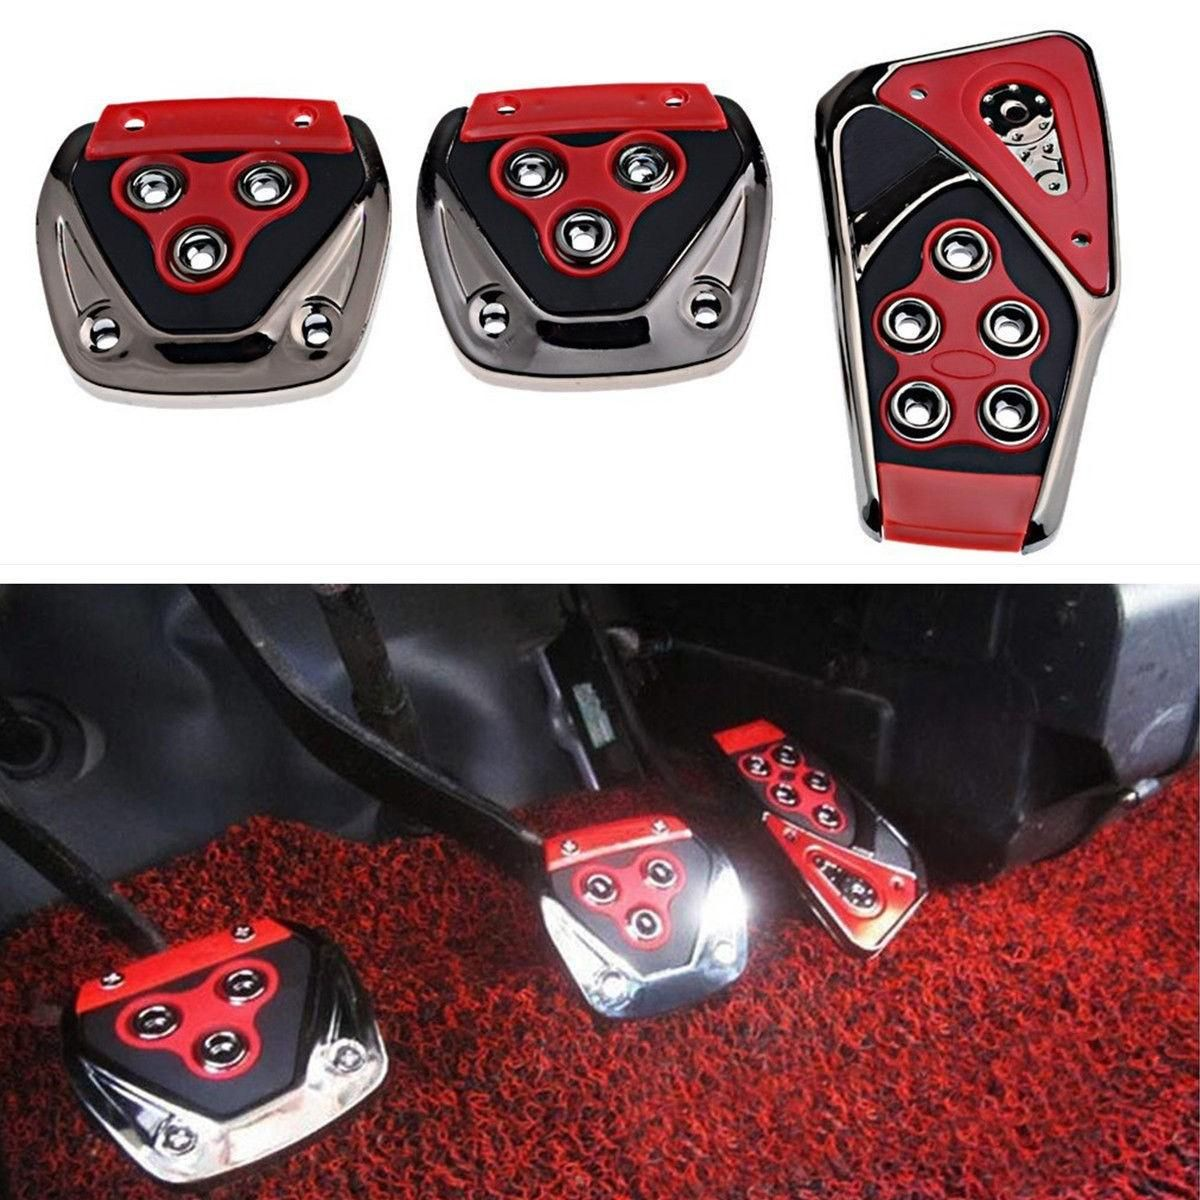 Universal Car Pedal Manual Brake Gas Clutch Accelerator Pedal Cover Car Repair Maintenance From Automobiles Motorcycles On Banggood Com In 2020 Pedal Car Repair And Maintenance